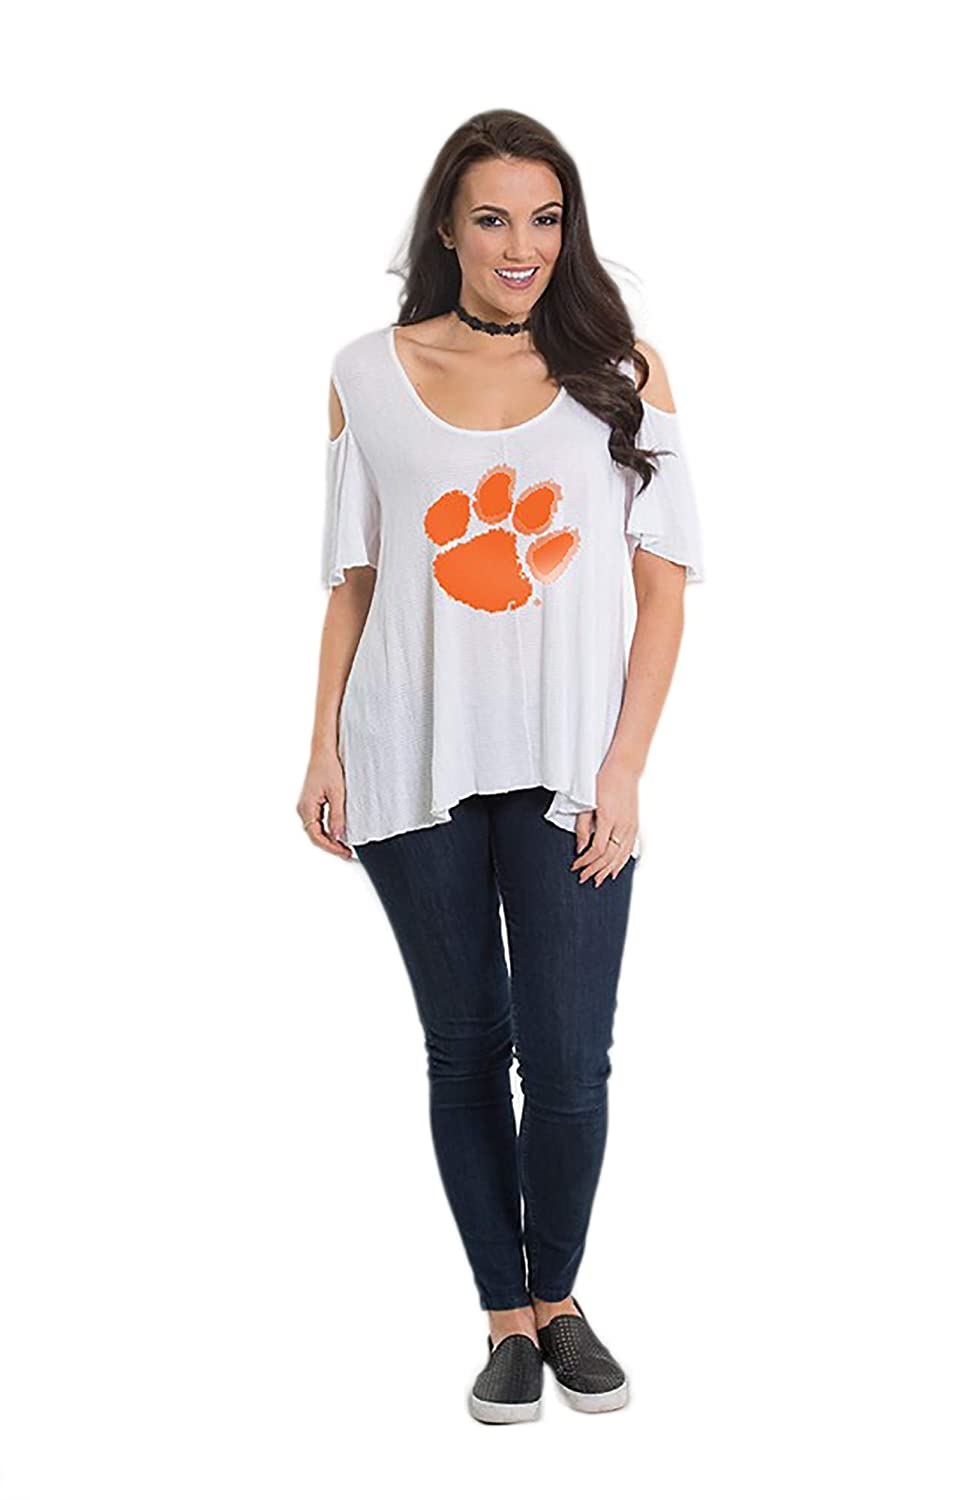 8b66a71a3 Amazon.com : Flying Colors Women's NCAA Clemson Tigers - Cold Shoulder Flowy  Tee with a High Low Hem - White : Sports & Outdoors